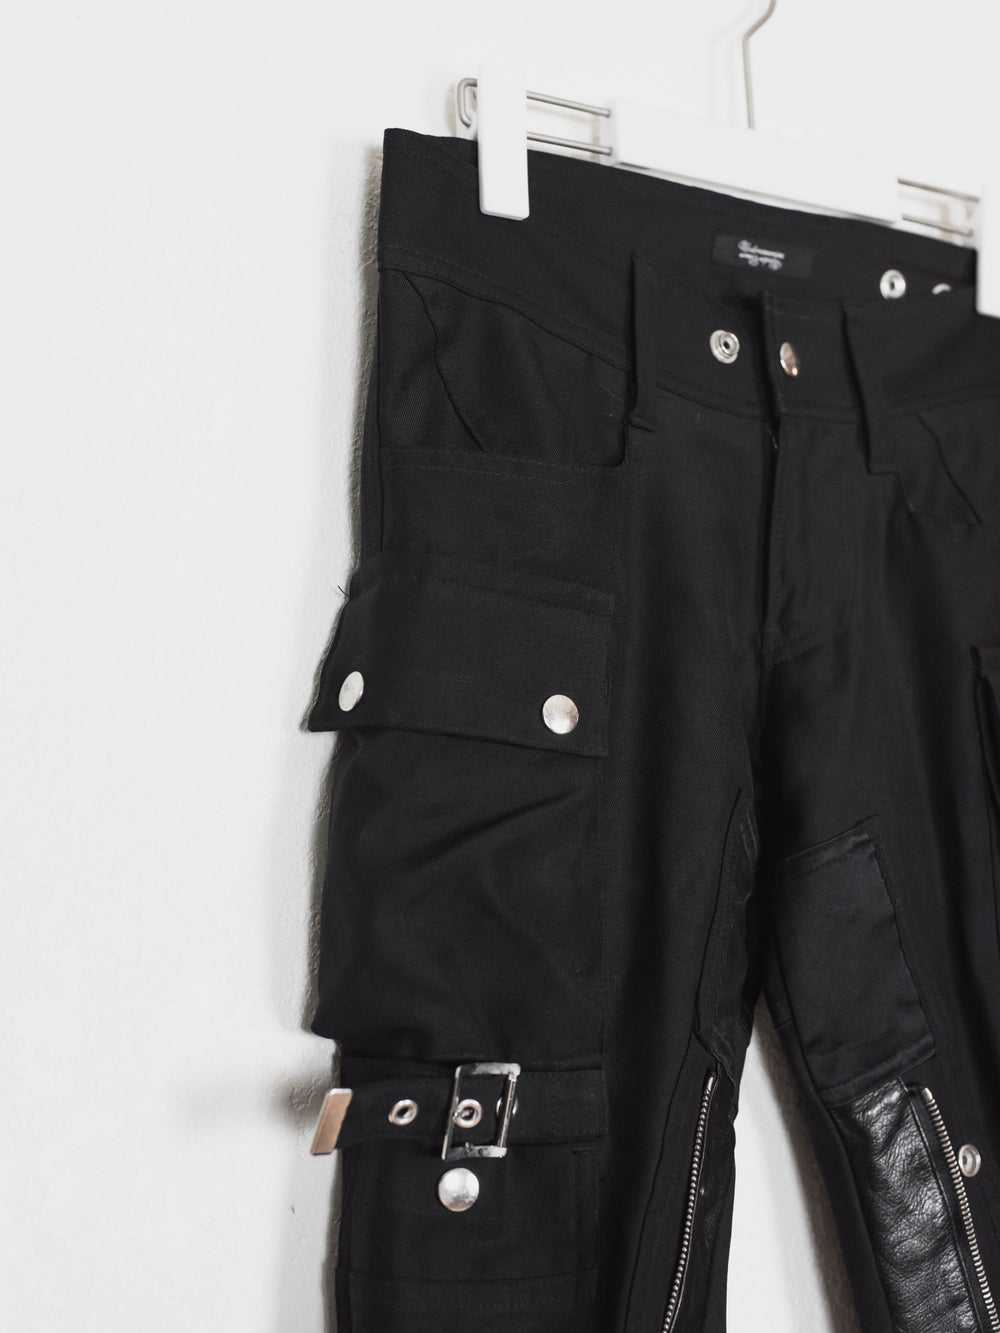 Undercover AW08 Bondage Buckle Strap Cargo Pants